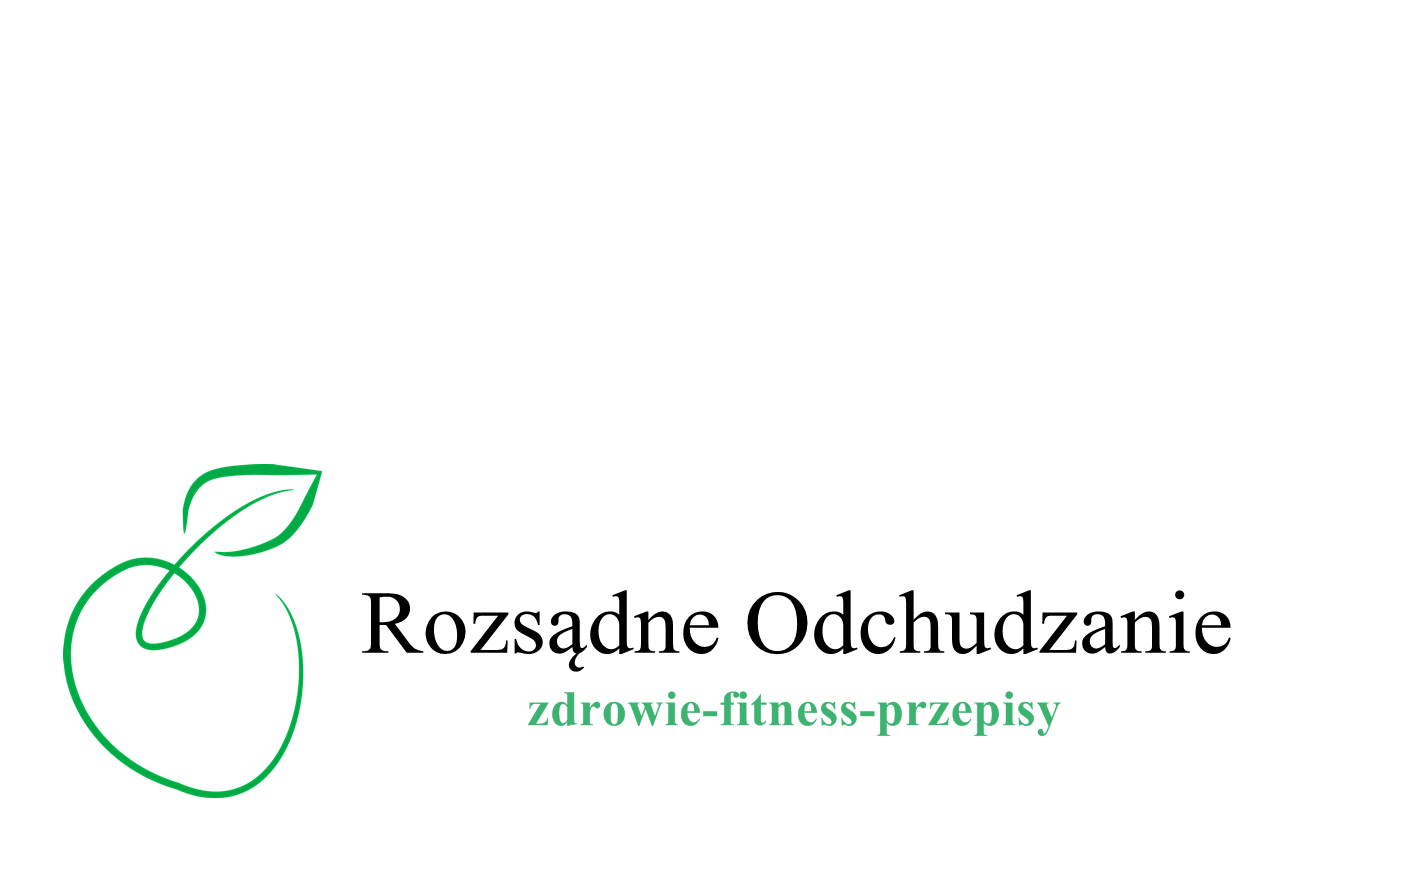 Rozsądne Odchudzanie